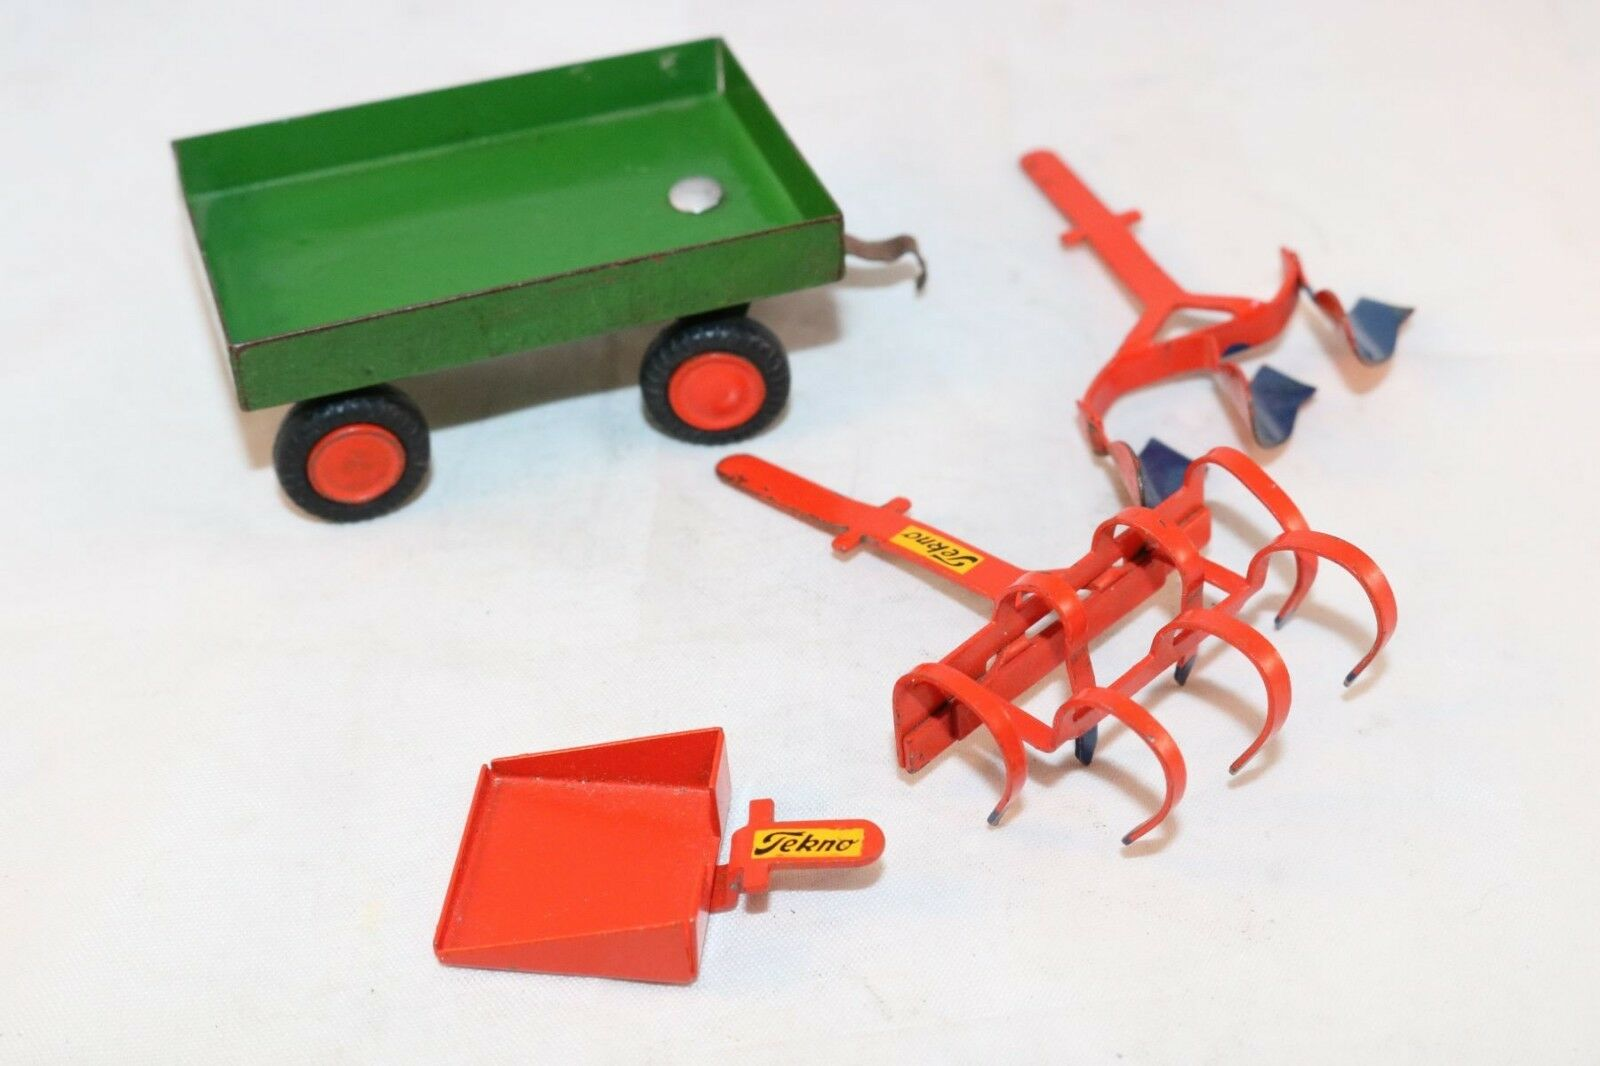 Tekno Denmark agricultural vehicle parts all original and in excellent condition